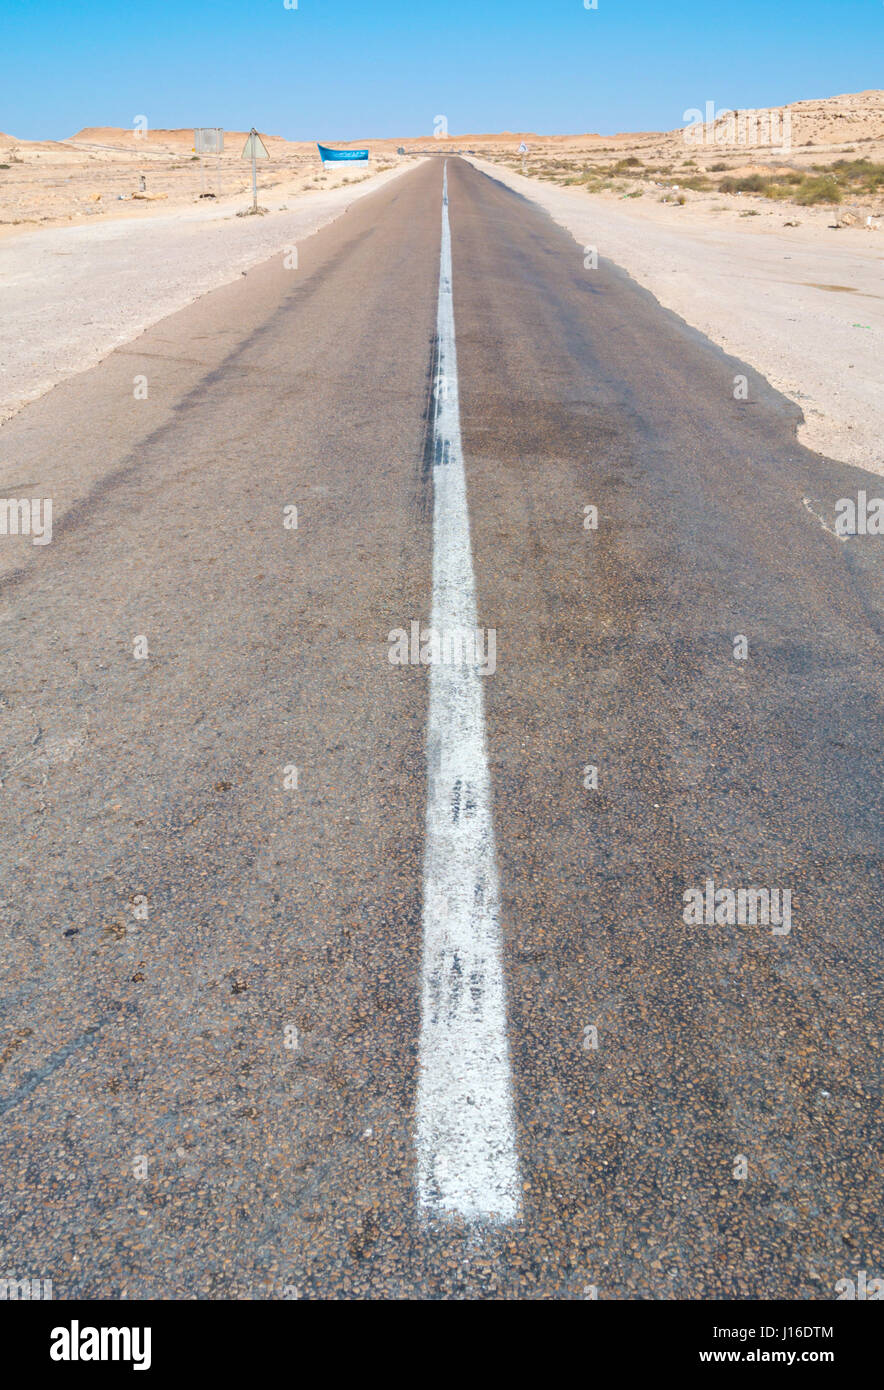 N1 road, between Boujdour and Dakhla, Western Sahara, administered by Morocco, Africa Stock Photo